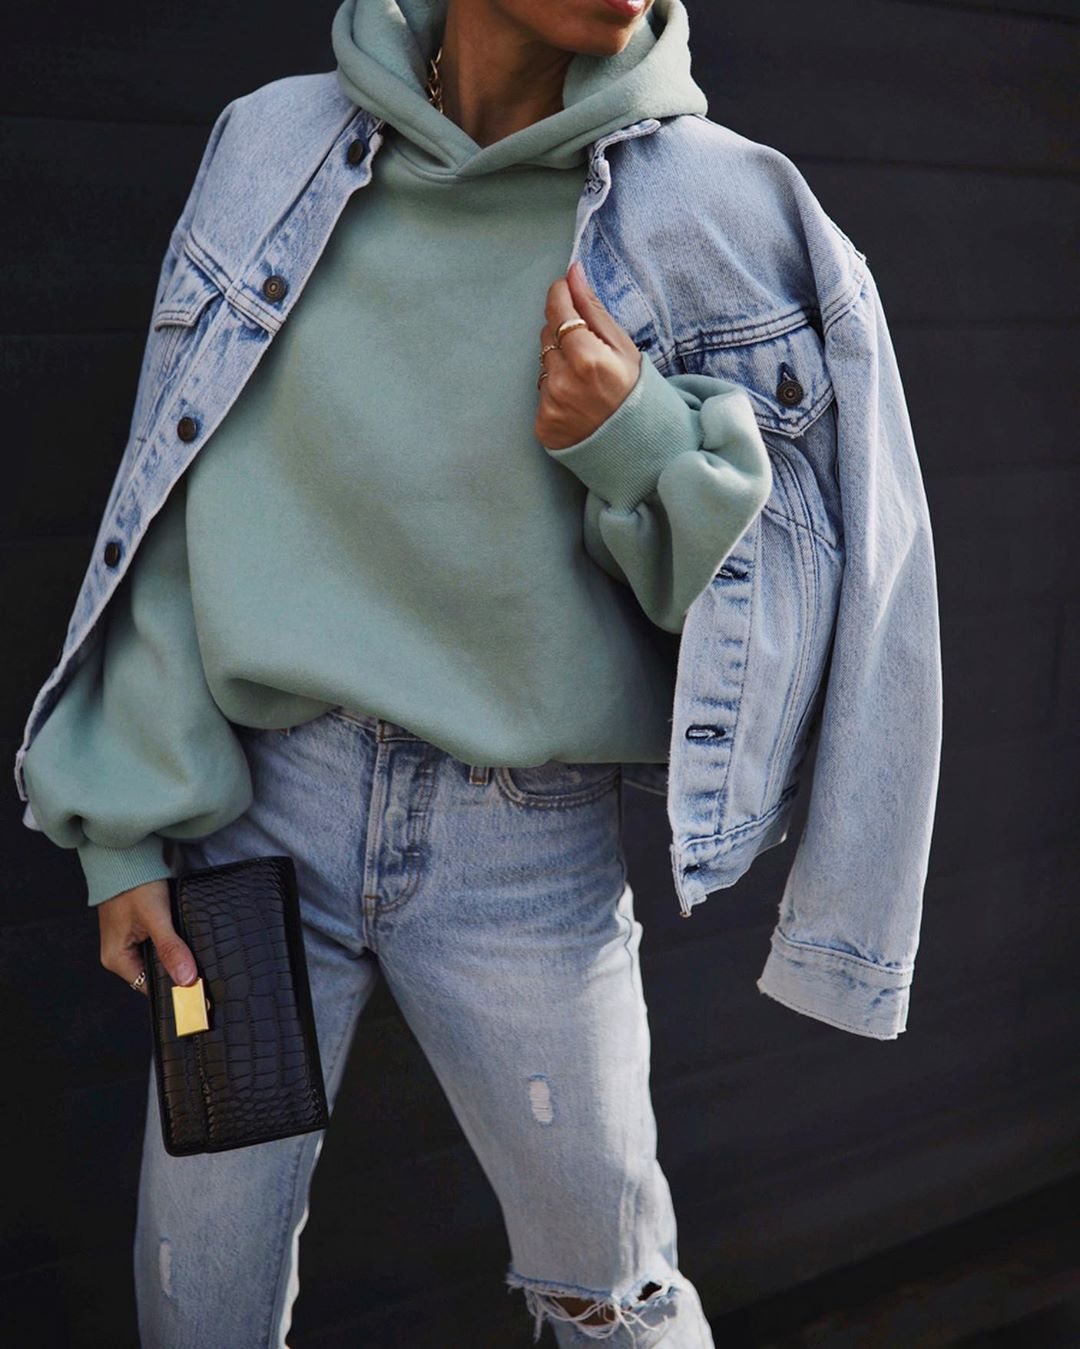 This Double Denim Outfit Looks Stylish and Relaxed